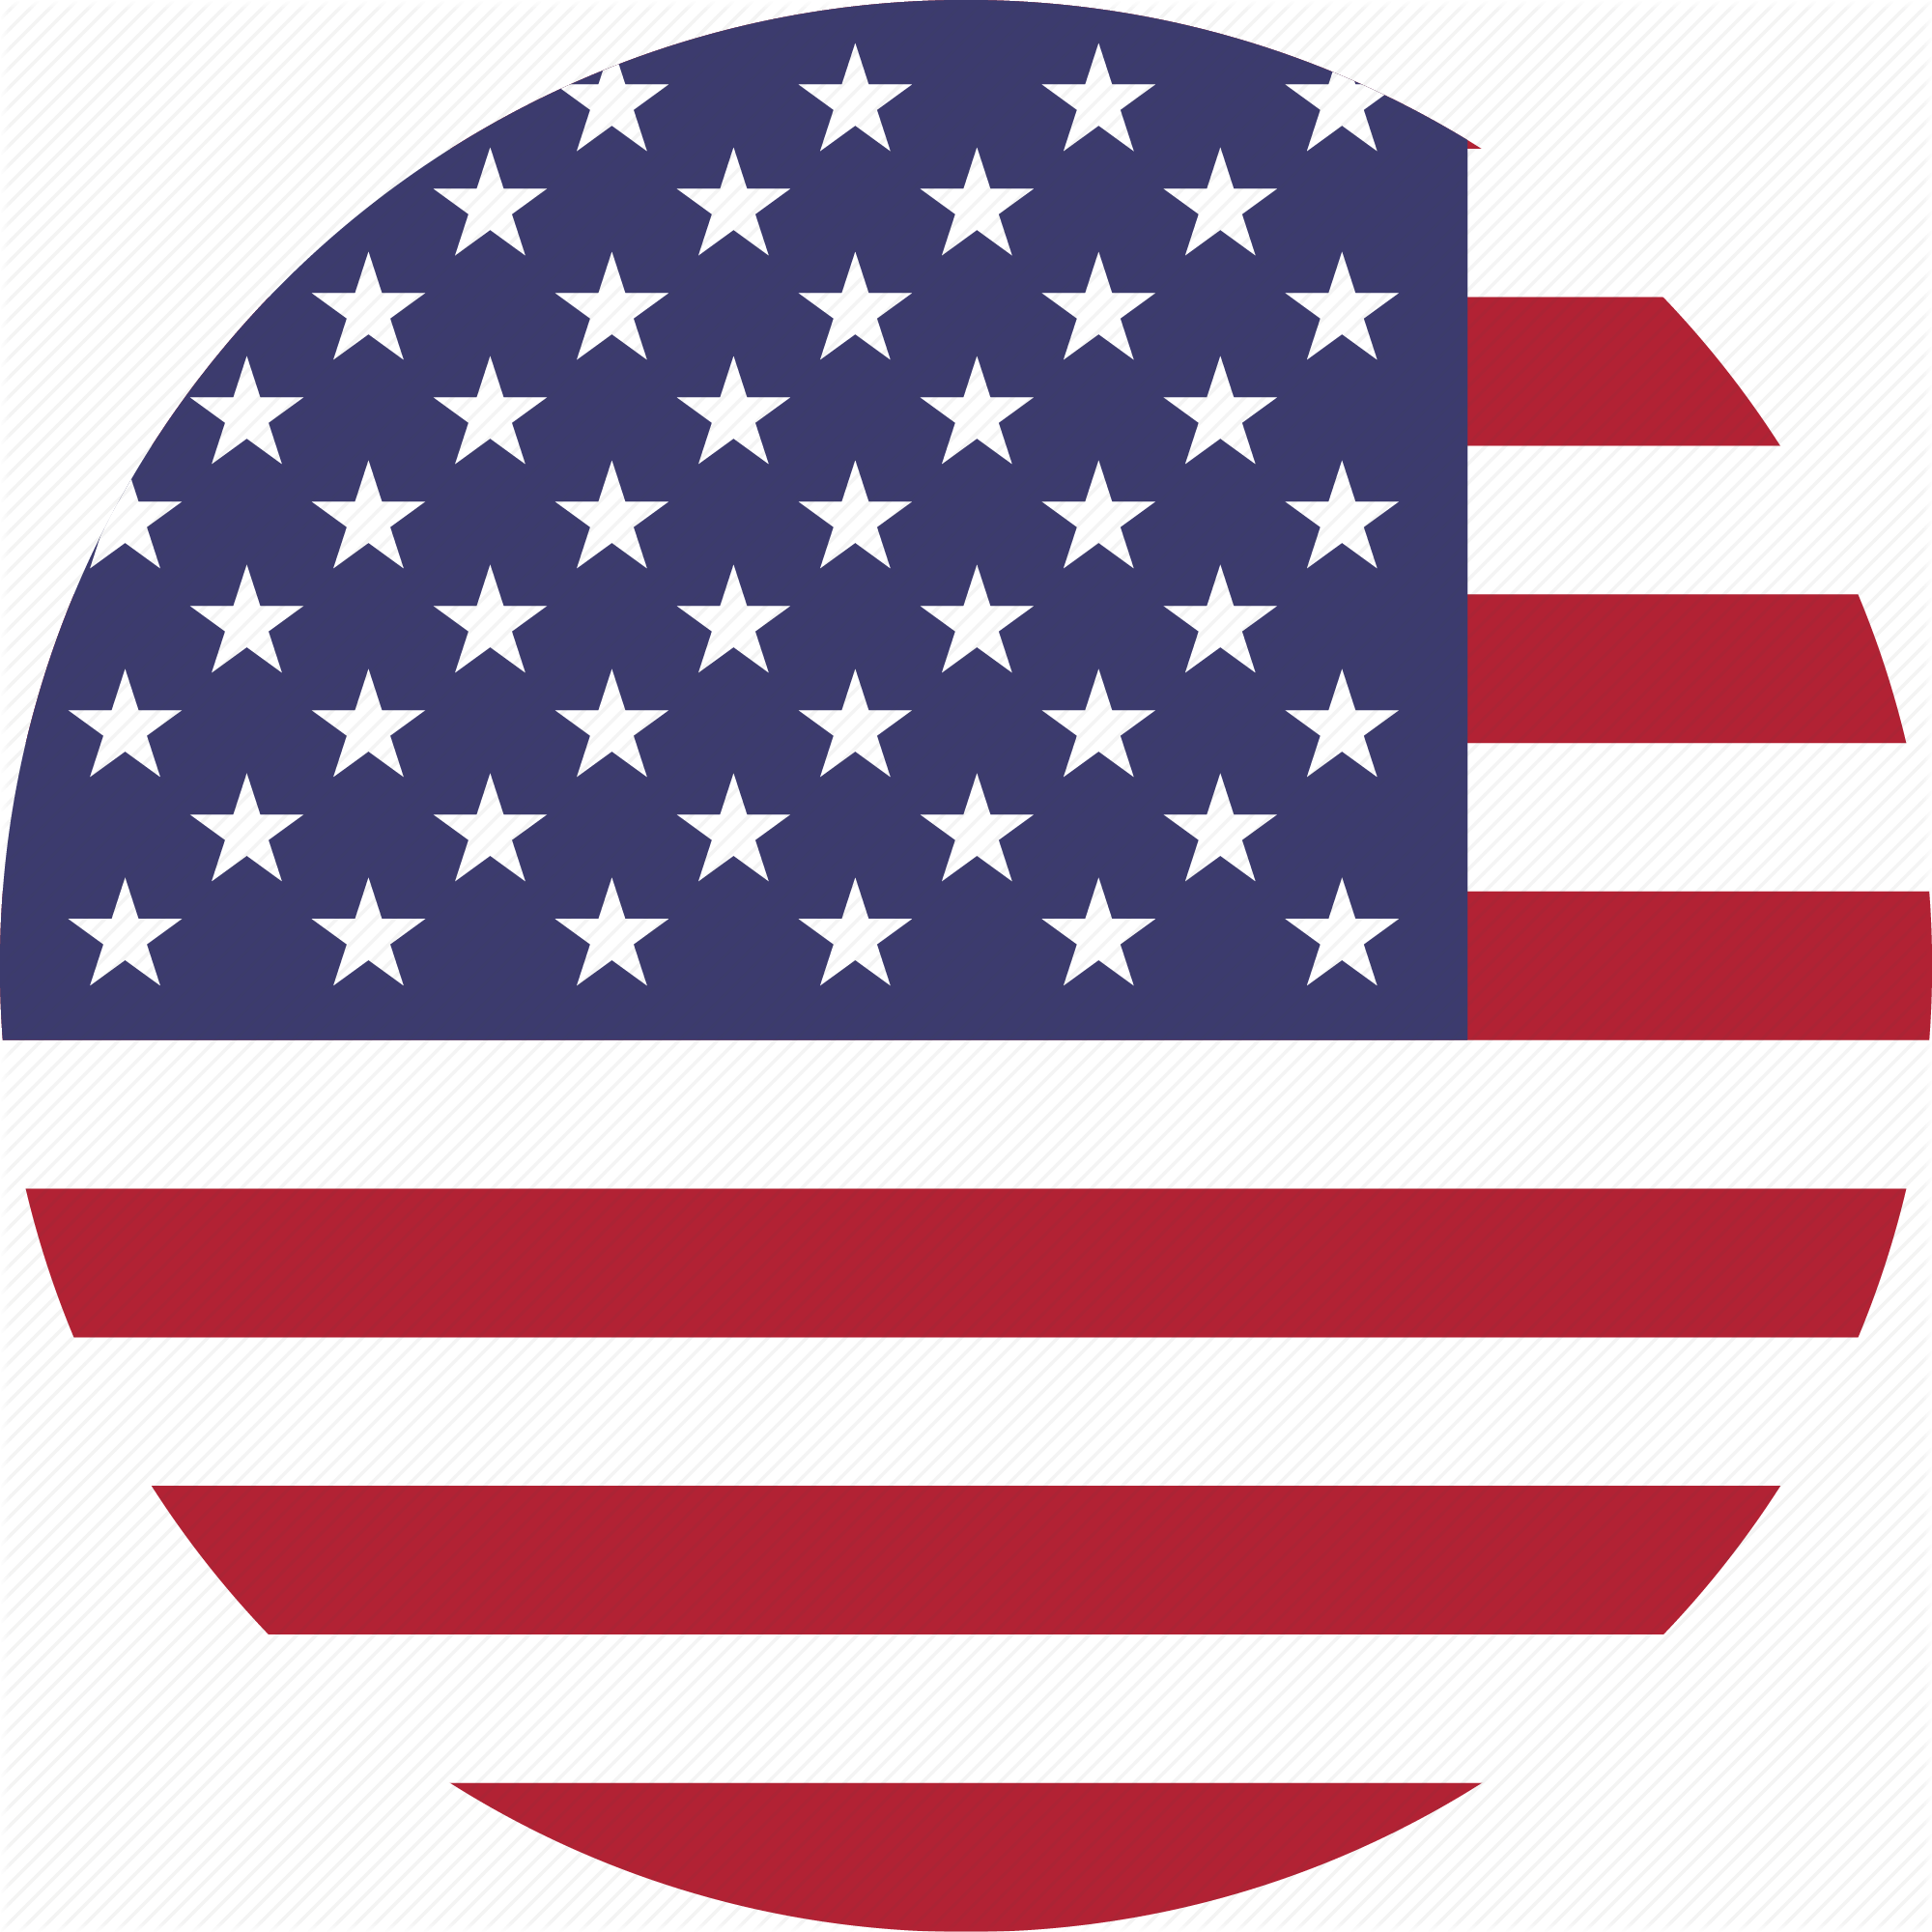 Us flag clipart png. Image of usa waving